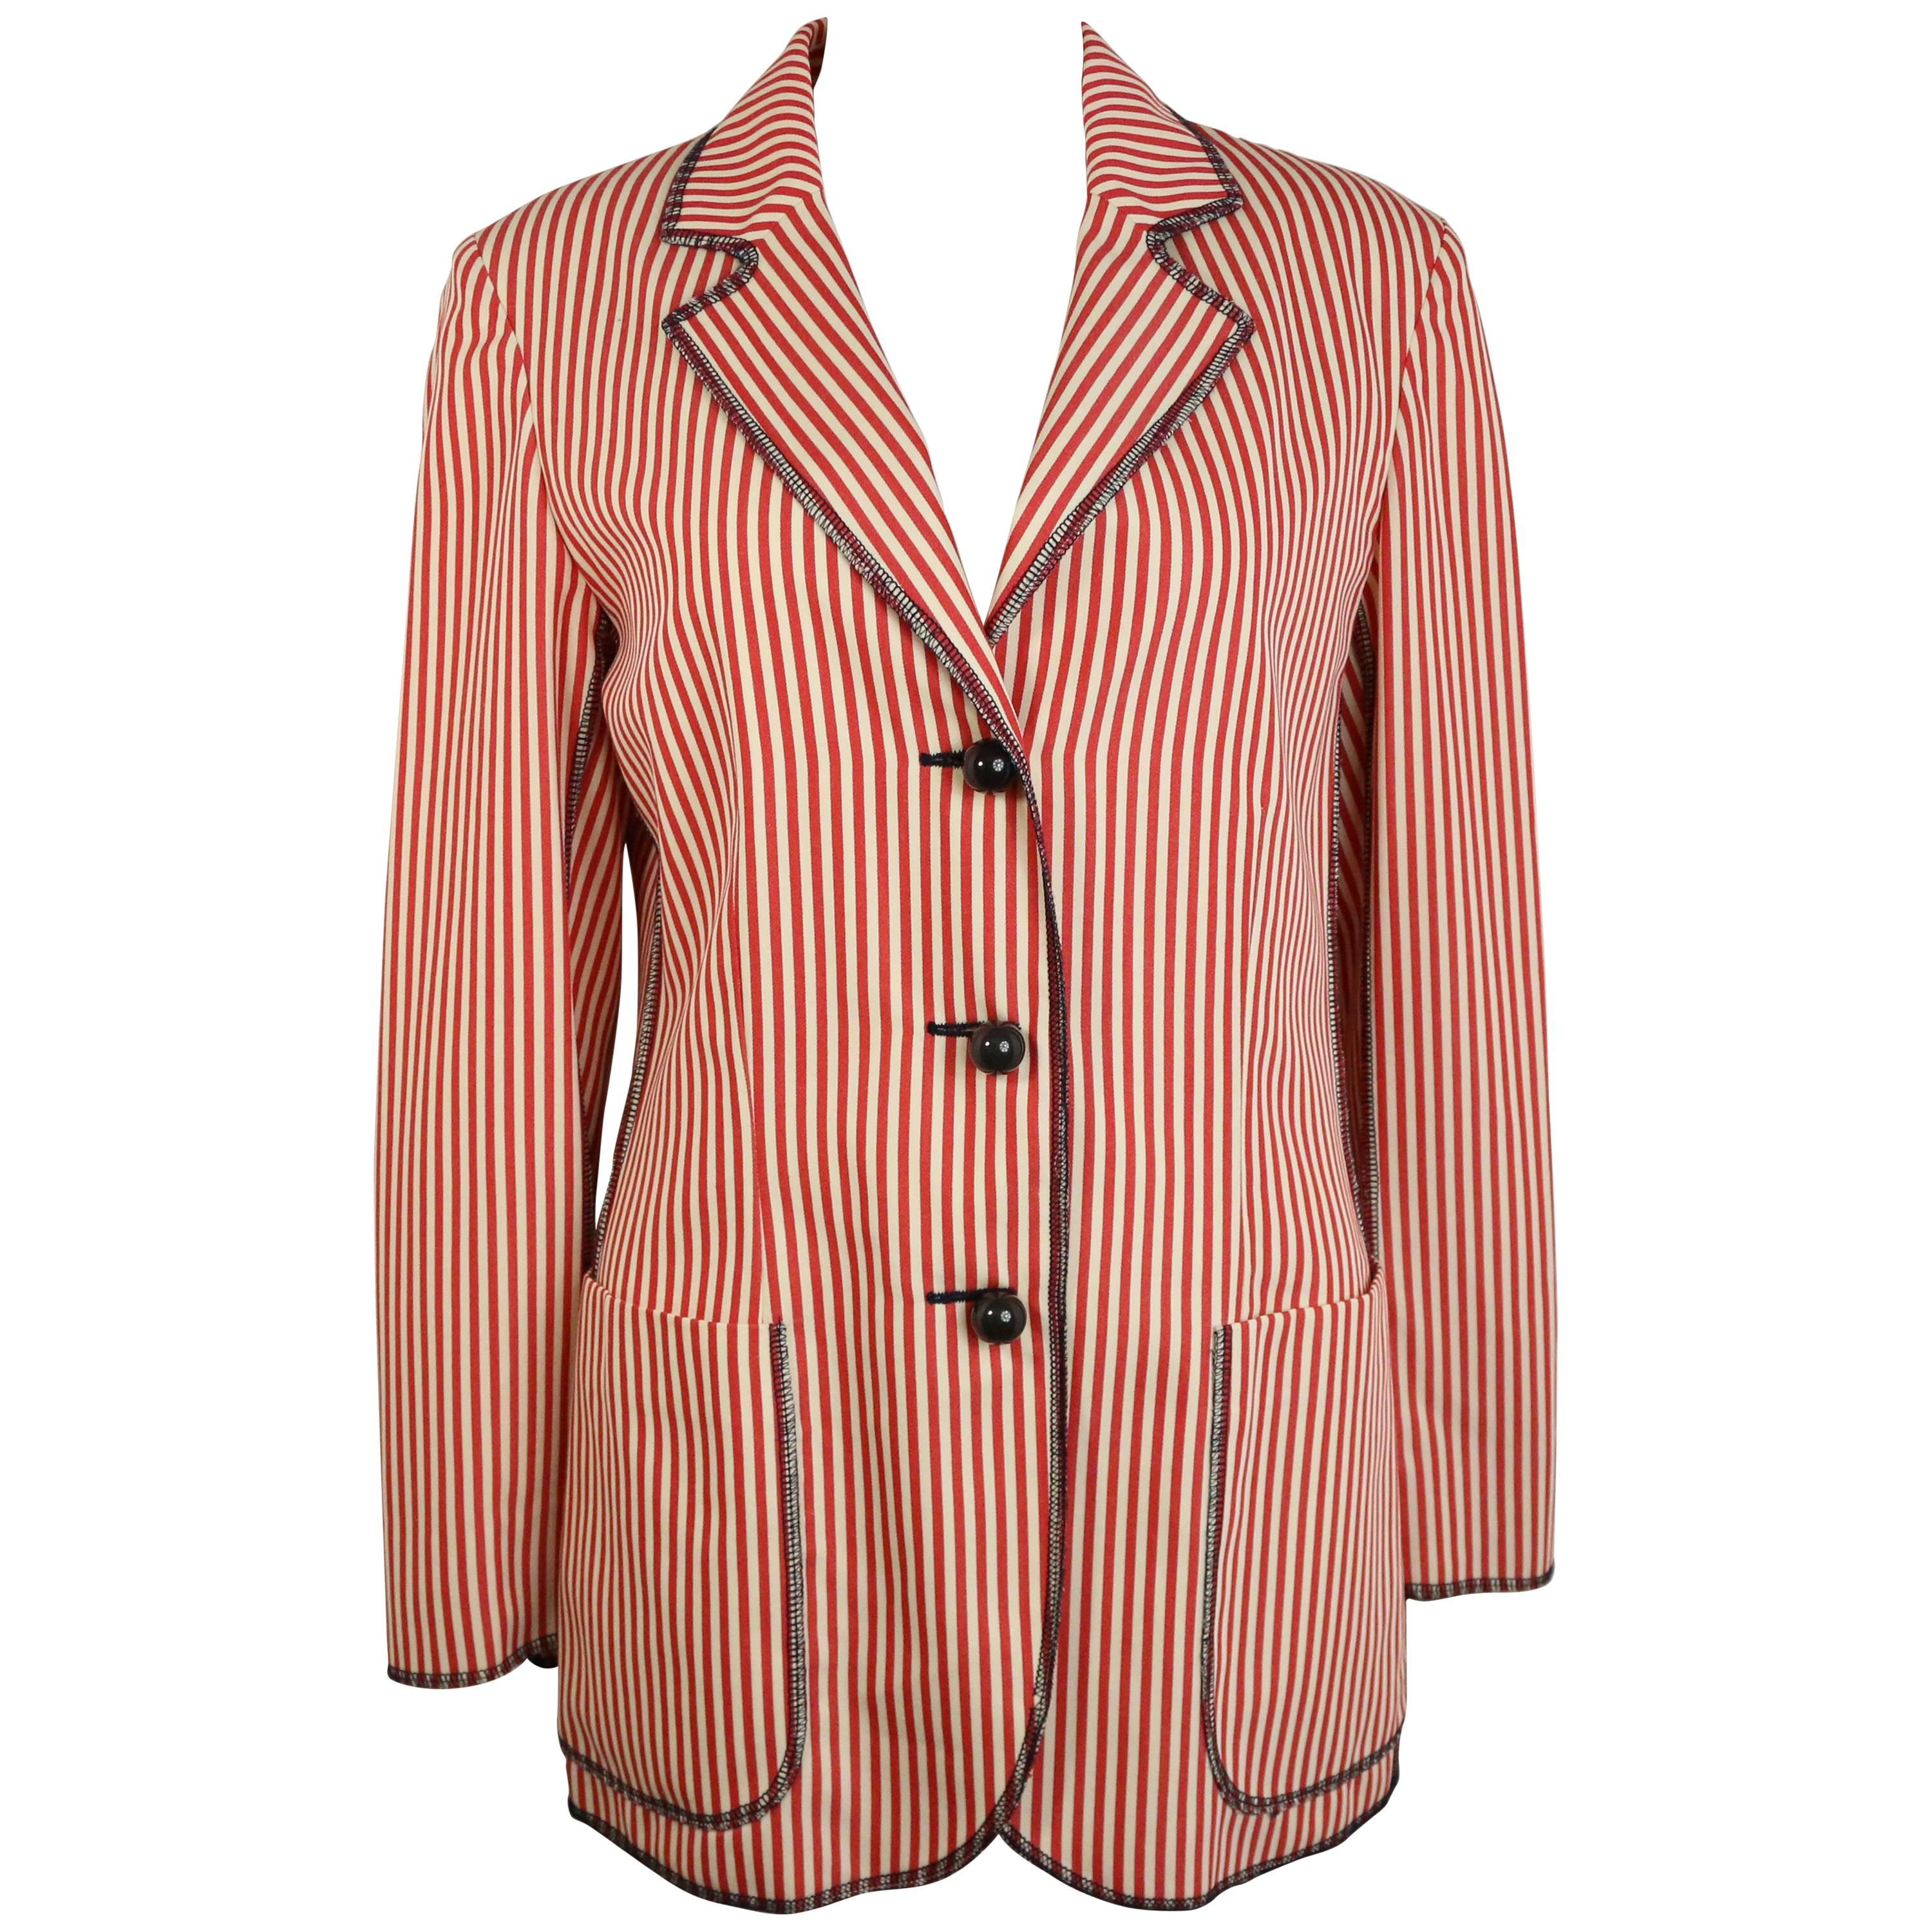 Moschino Cheap and Chic Red/White Striped Jacket